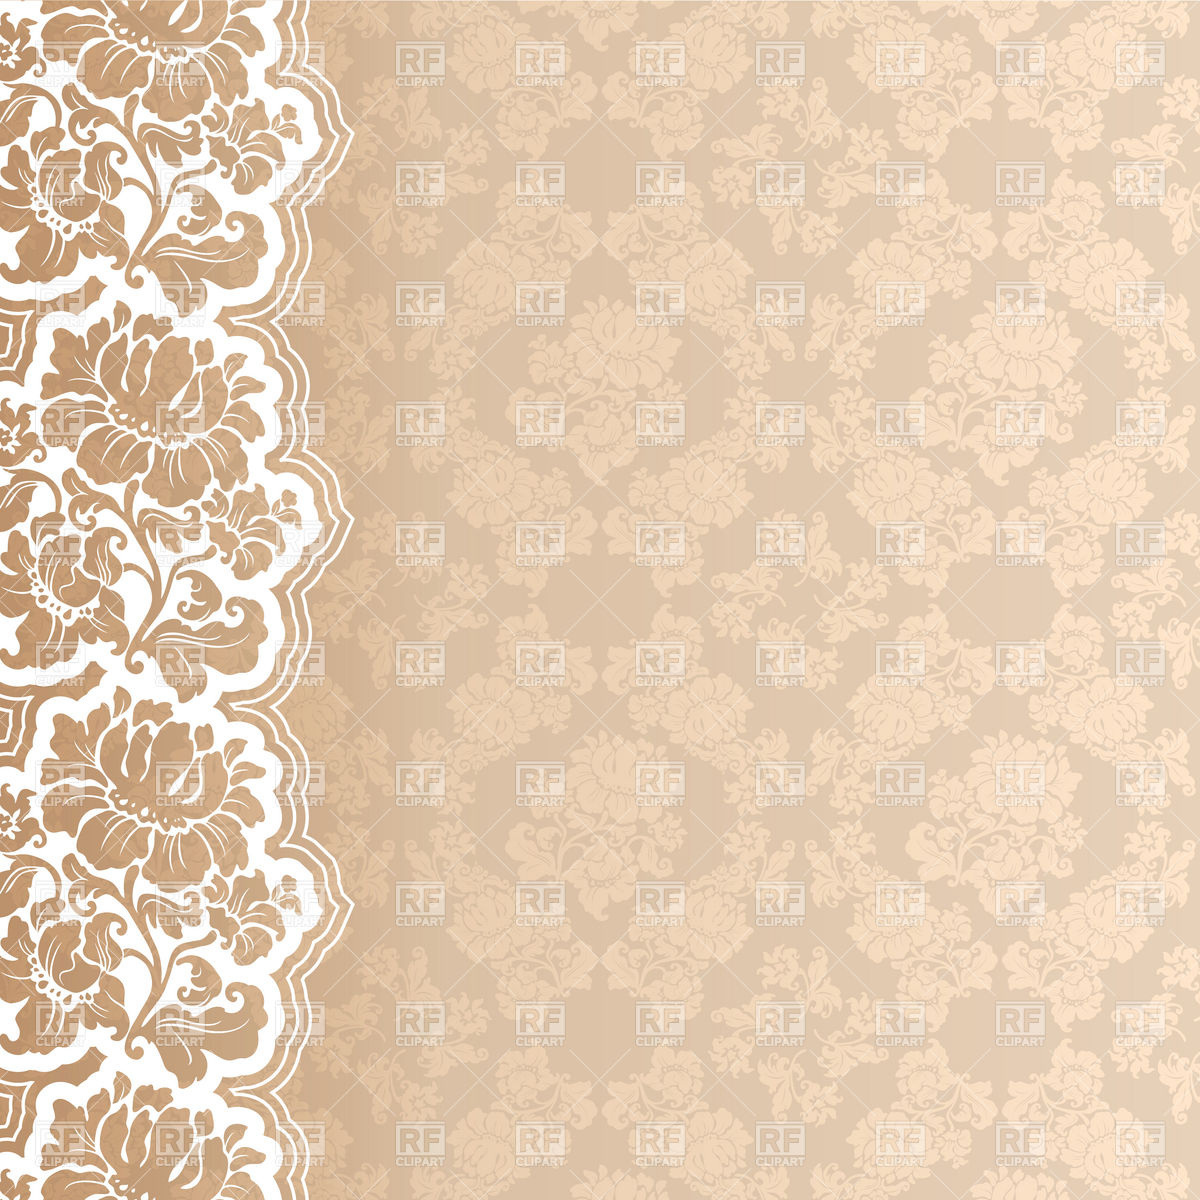 Soft Lace Flower Clipart - Clipart Kid